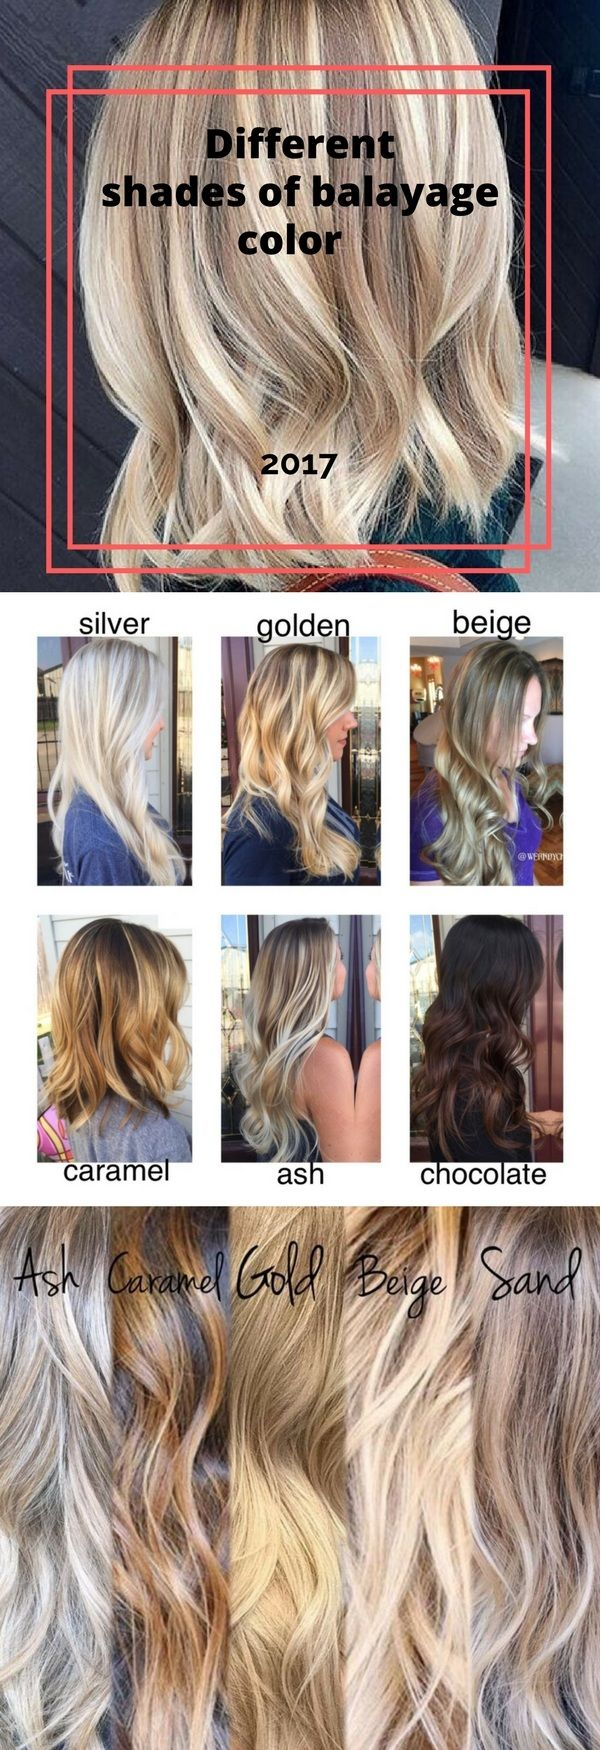 Traditional highlighting techniques, which we all were crazy about a few months ago, have suffered their defeat from a new hot method that will make your hair look naturally sun kissed. Balayage hair highlights represent a far more artistic way of getting that sun-kissed Victoria's Secret Angel look. In comparison with the regular cap trick, balayage does really …